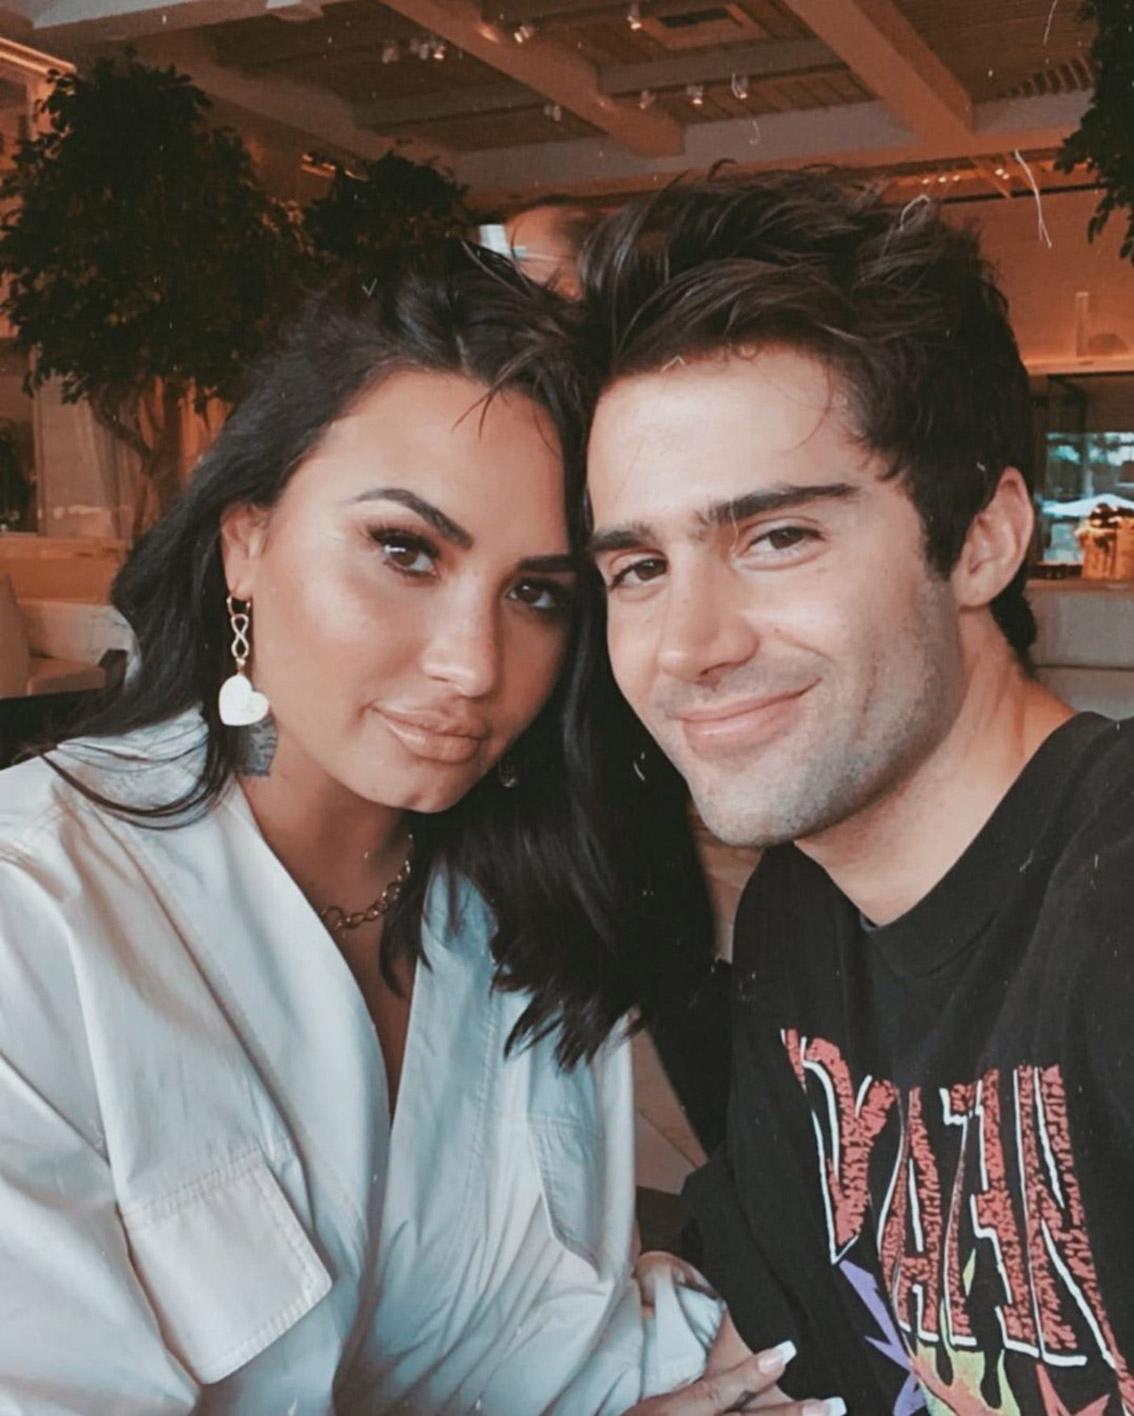 Demi Lovato's ex-fiancé Max Elrich is sick of her shenanigans. What has he said on Instagram? Here's what happened between Lovato & Elrich.